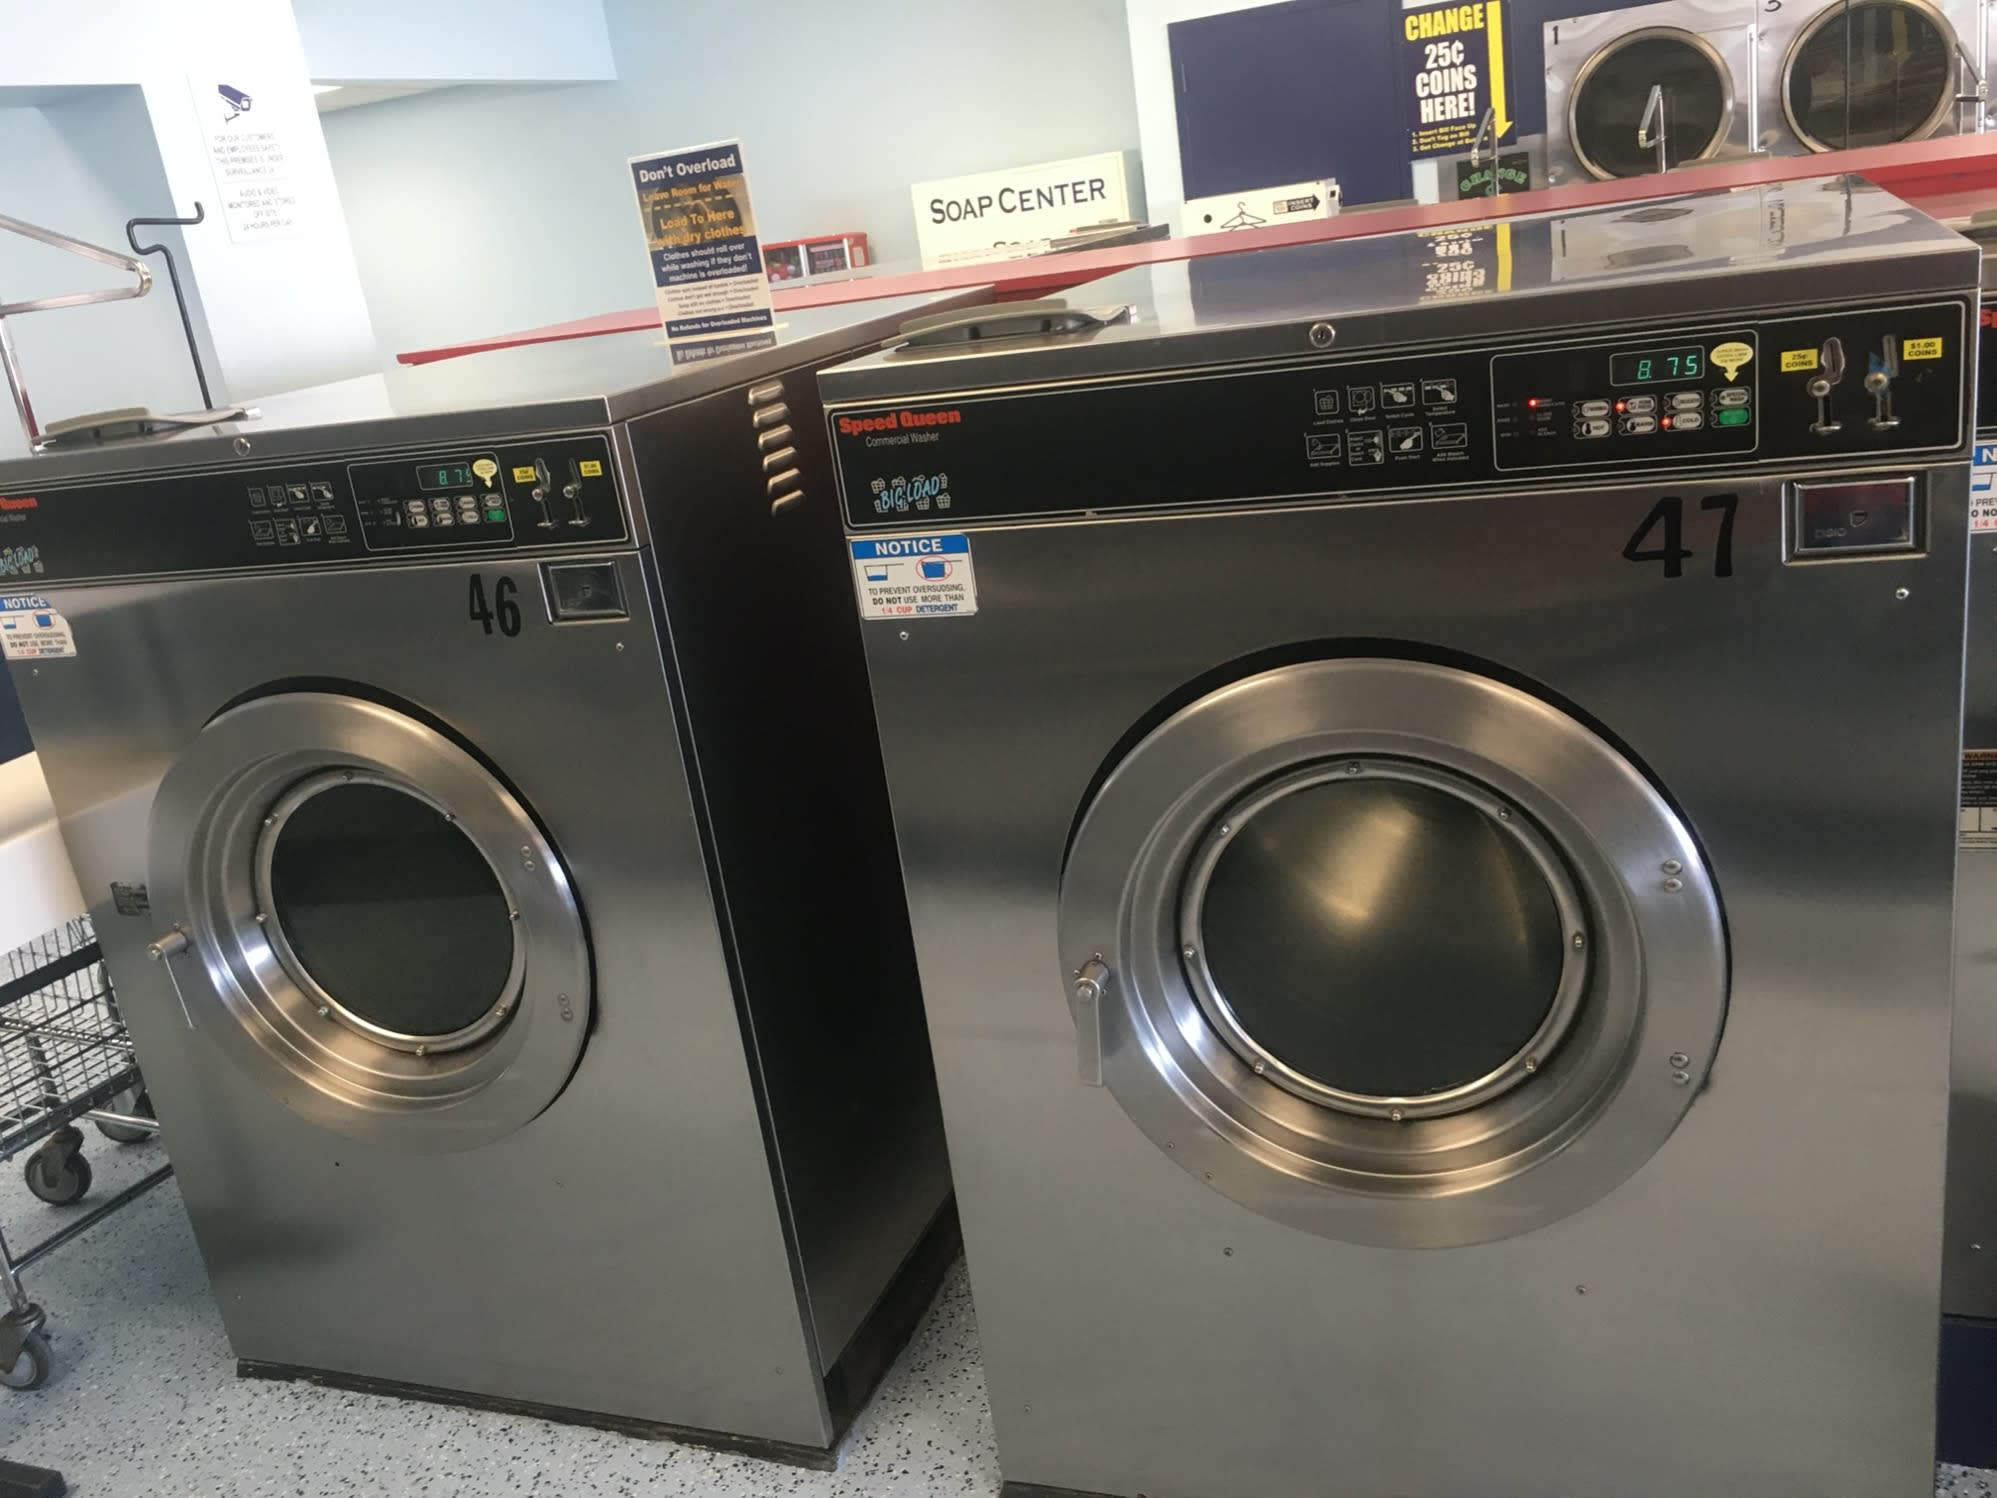 Coin Laundry Express - Flint, MI 48504 - (810)787-0610 | ShowMeLocal.com